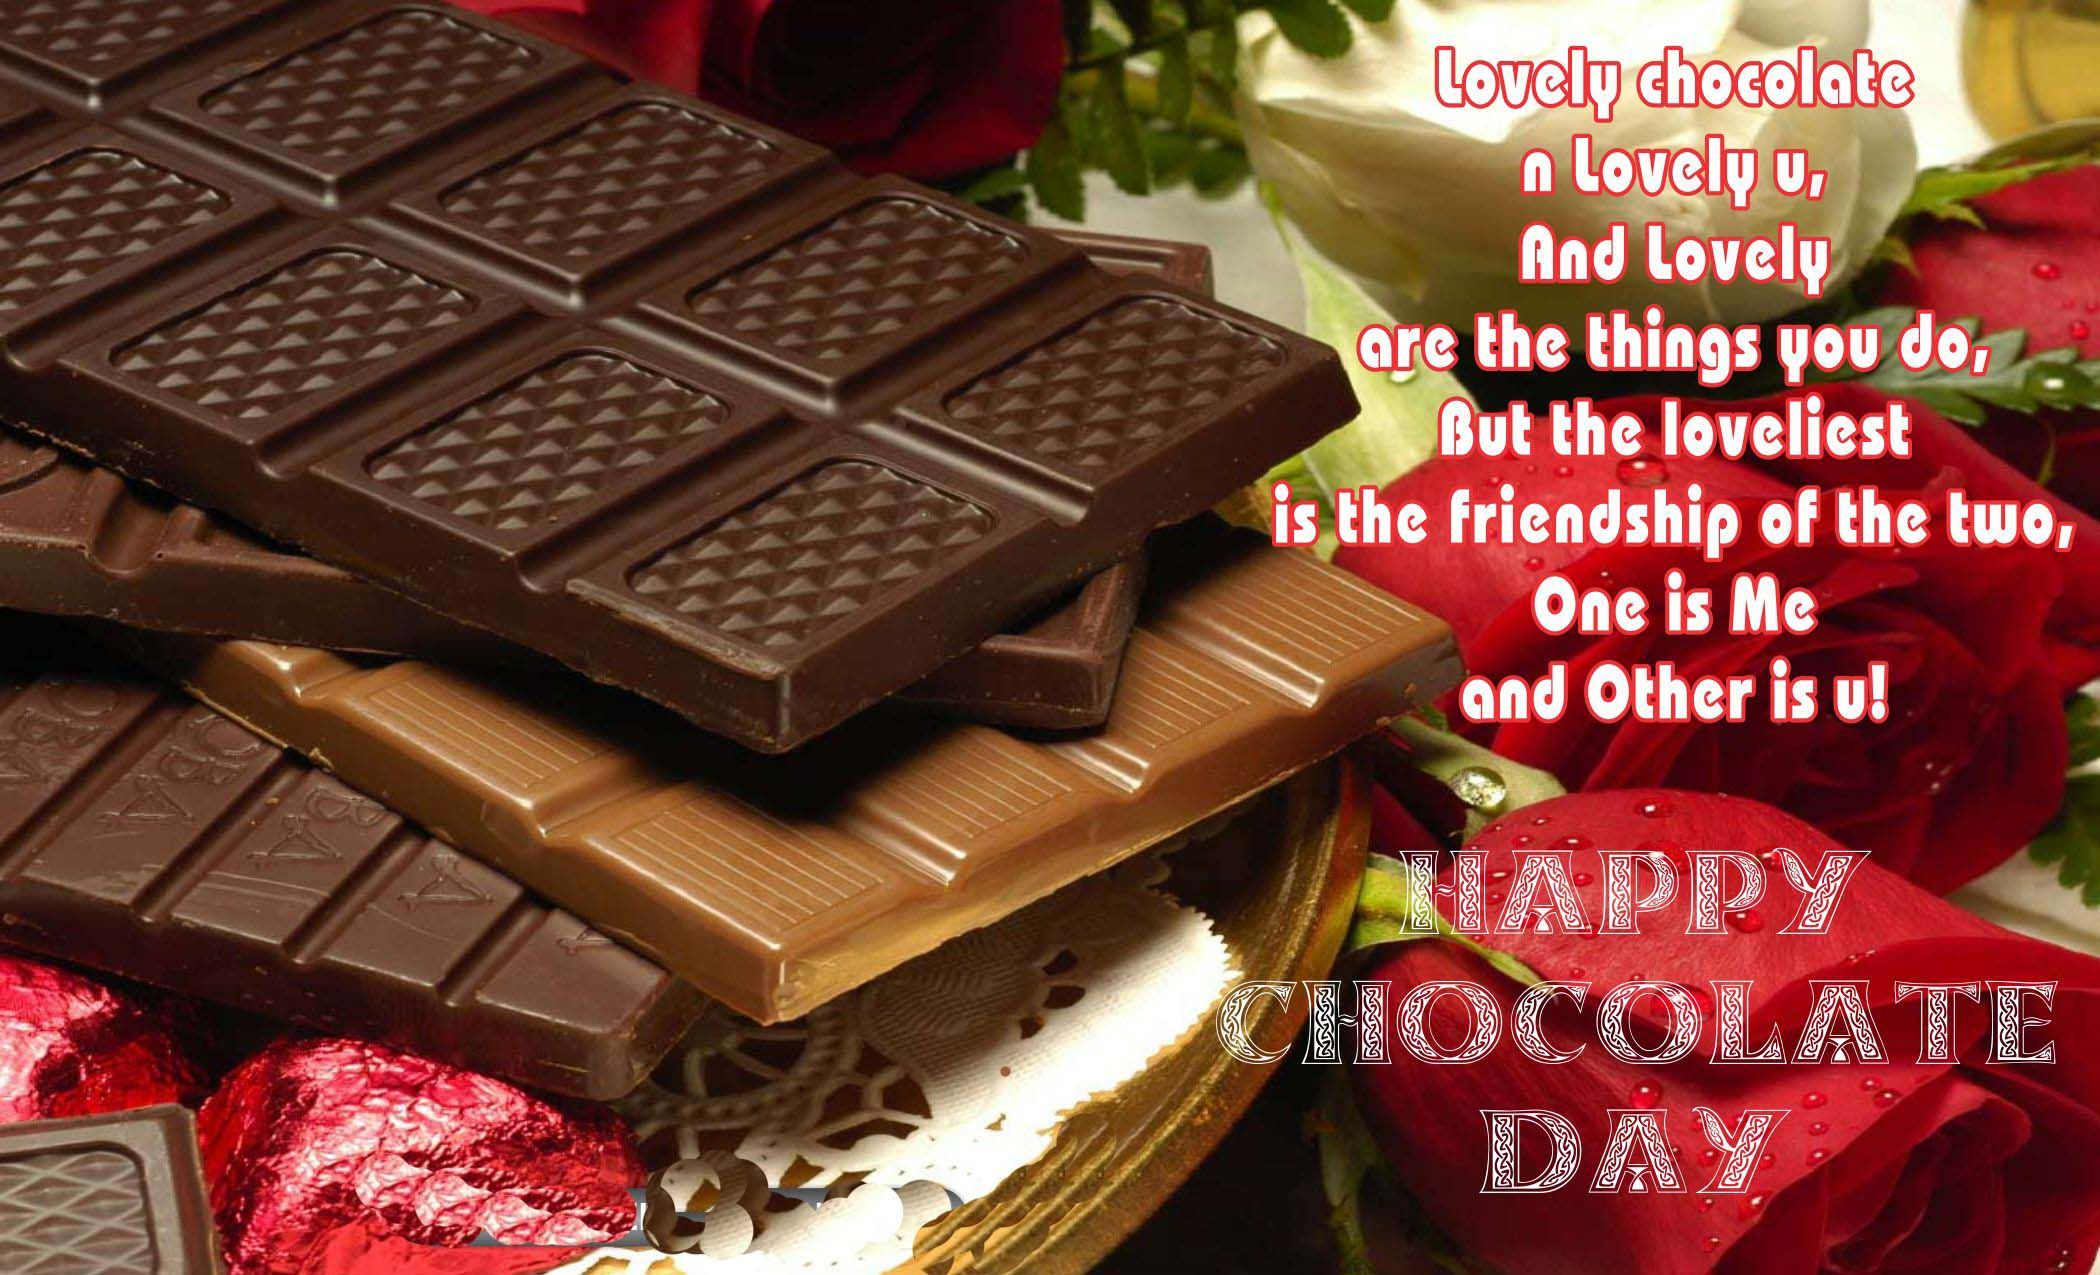 9th Of February Is National Chocolate Day Awesome Happy Chocolate Day Chocolate Day Images Happy Chocolate Day Wishes Happy romantic chocolate day images for